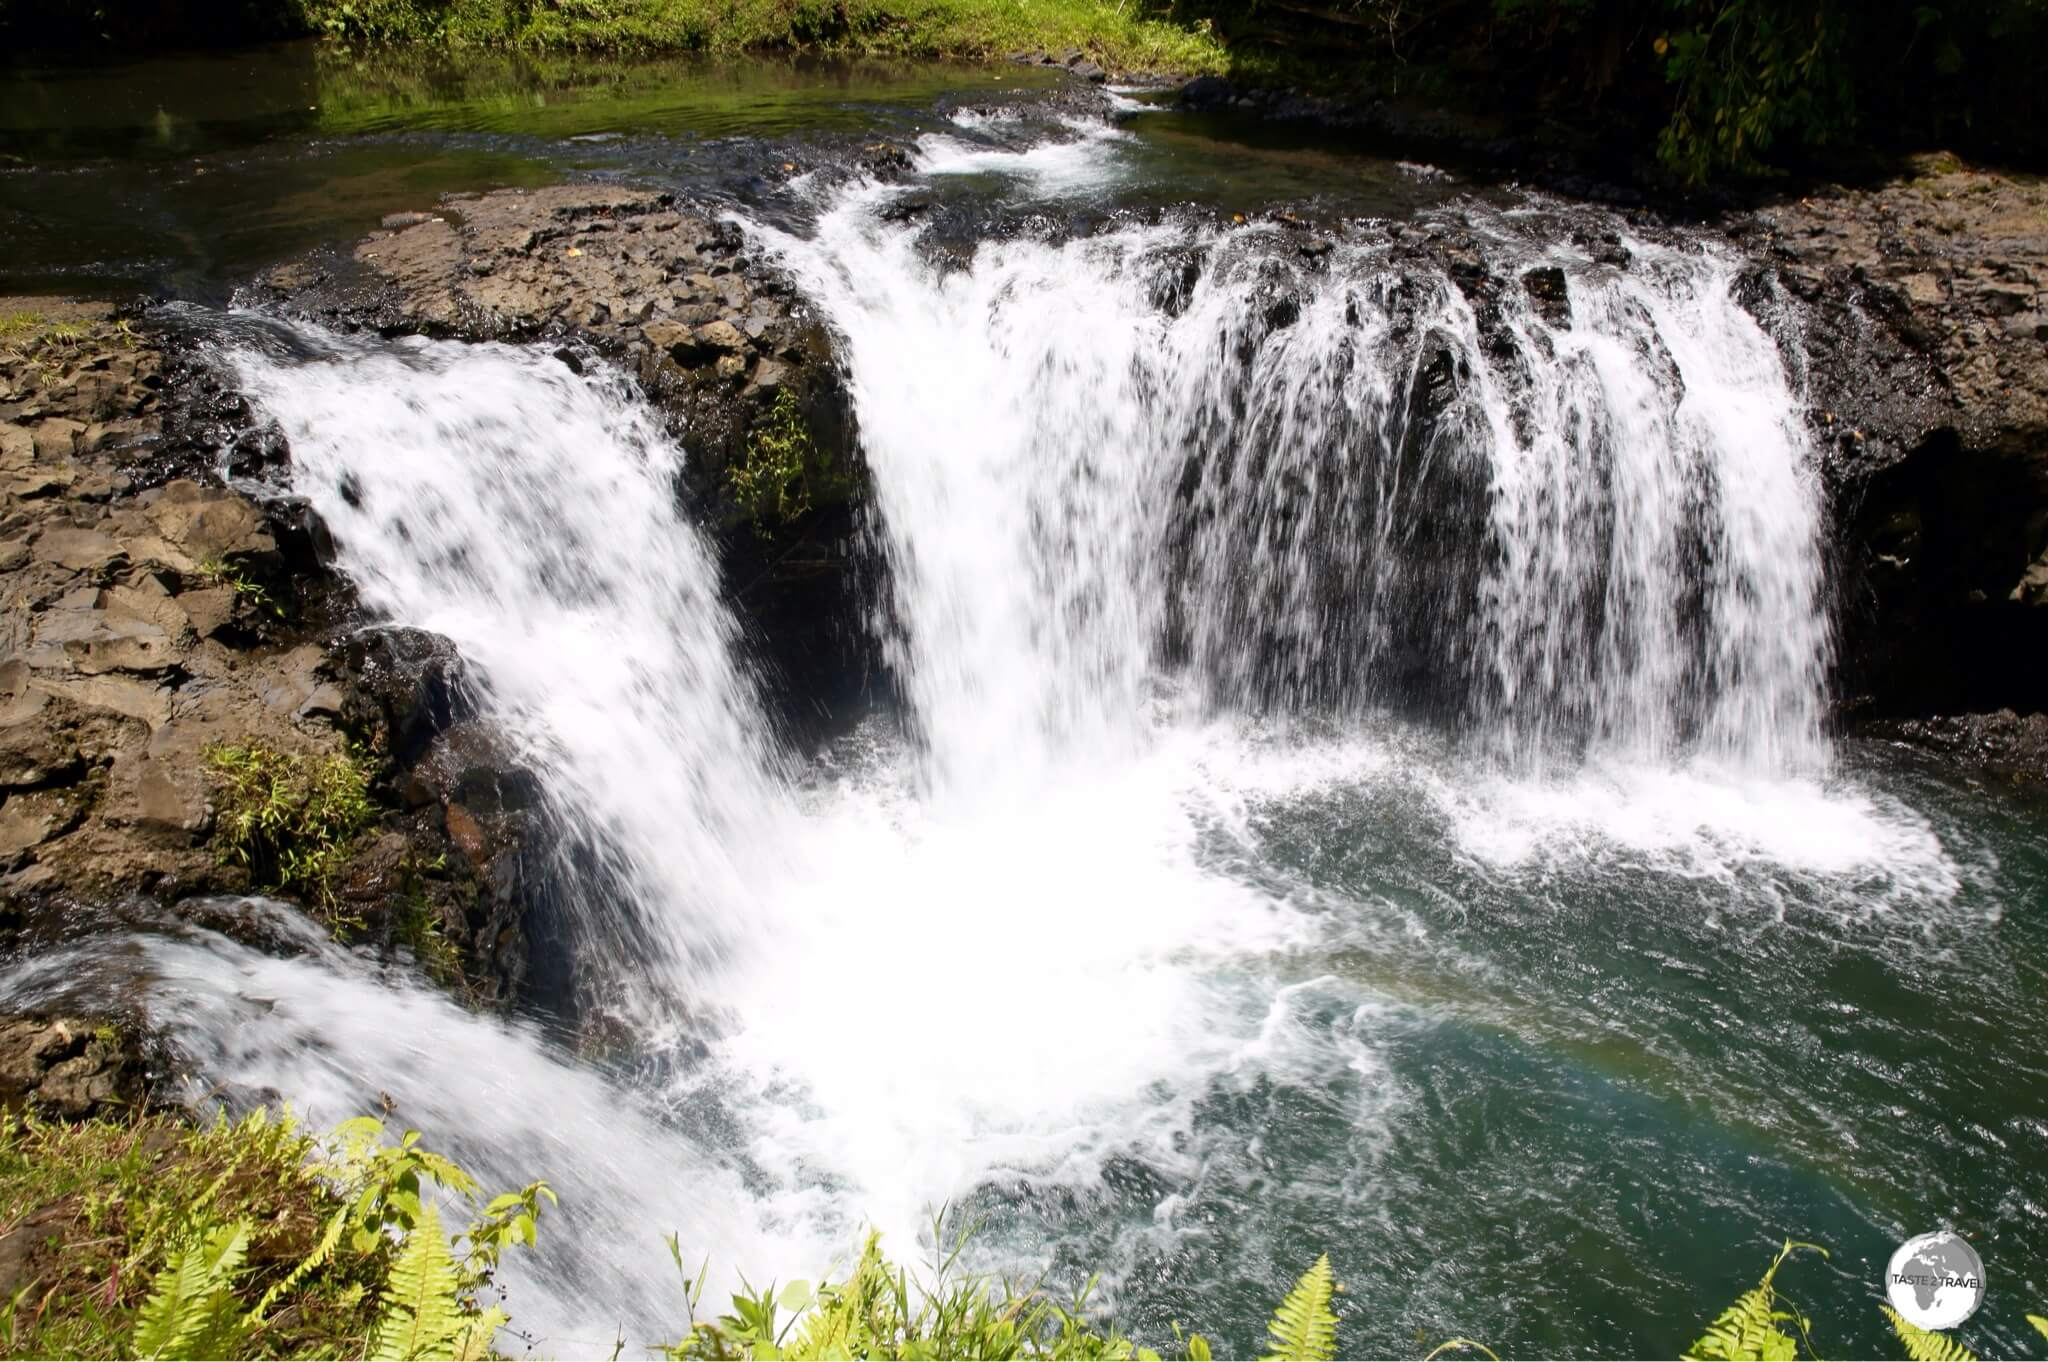 Surrounded by lush vegetation, the Togitogiga Waterfalls are a popular swimming hole.